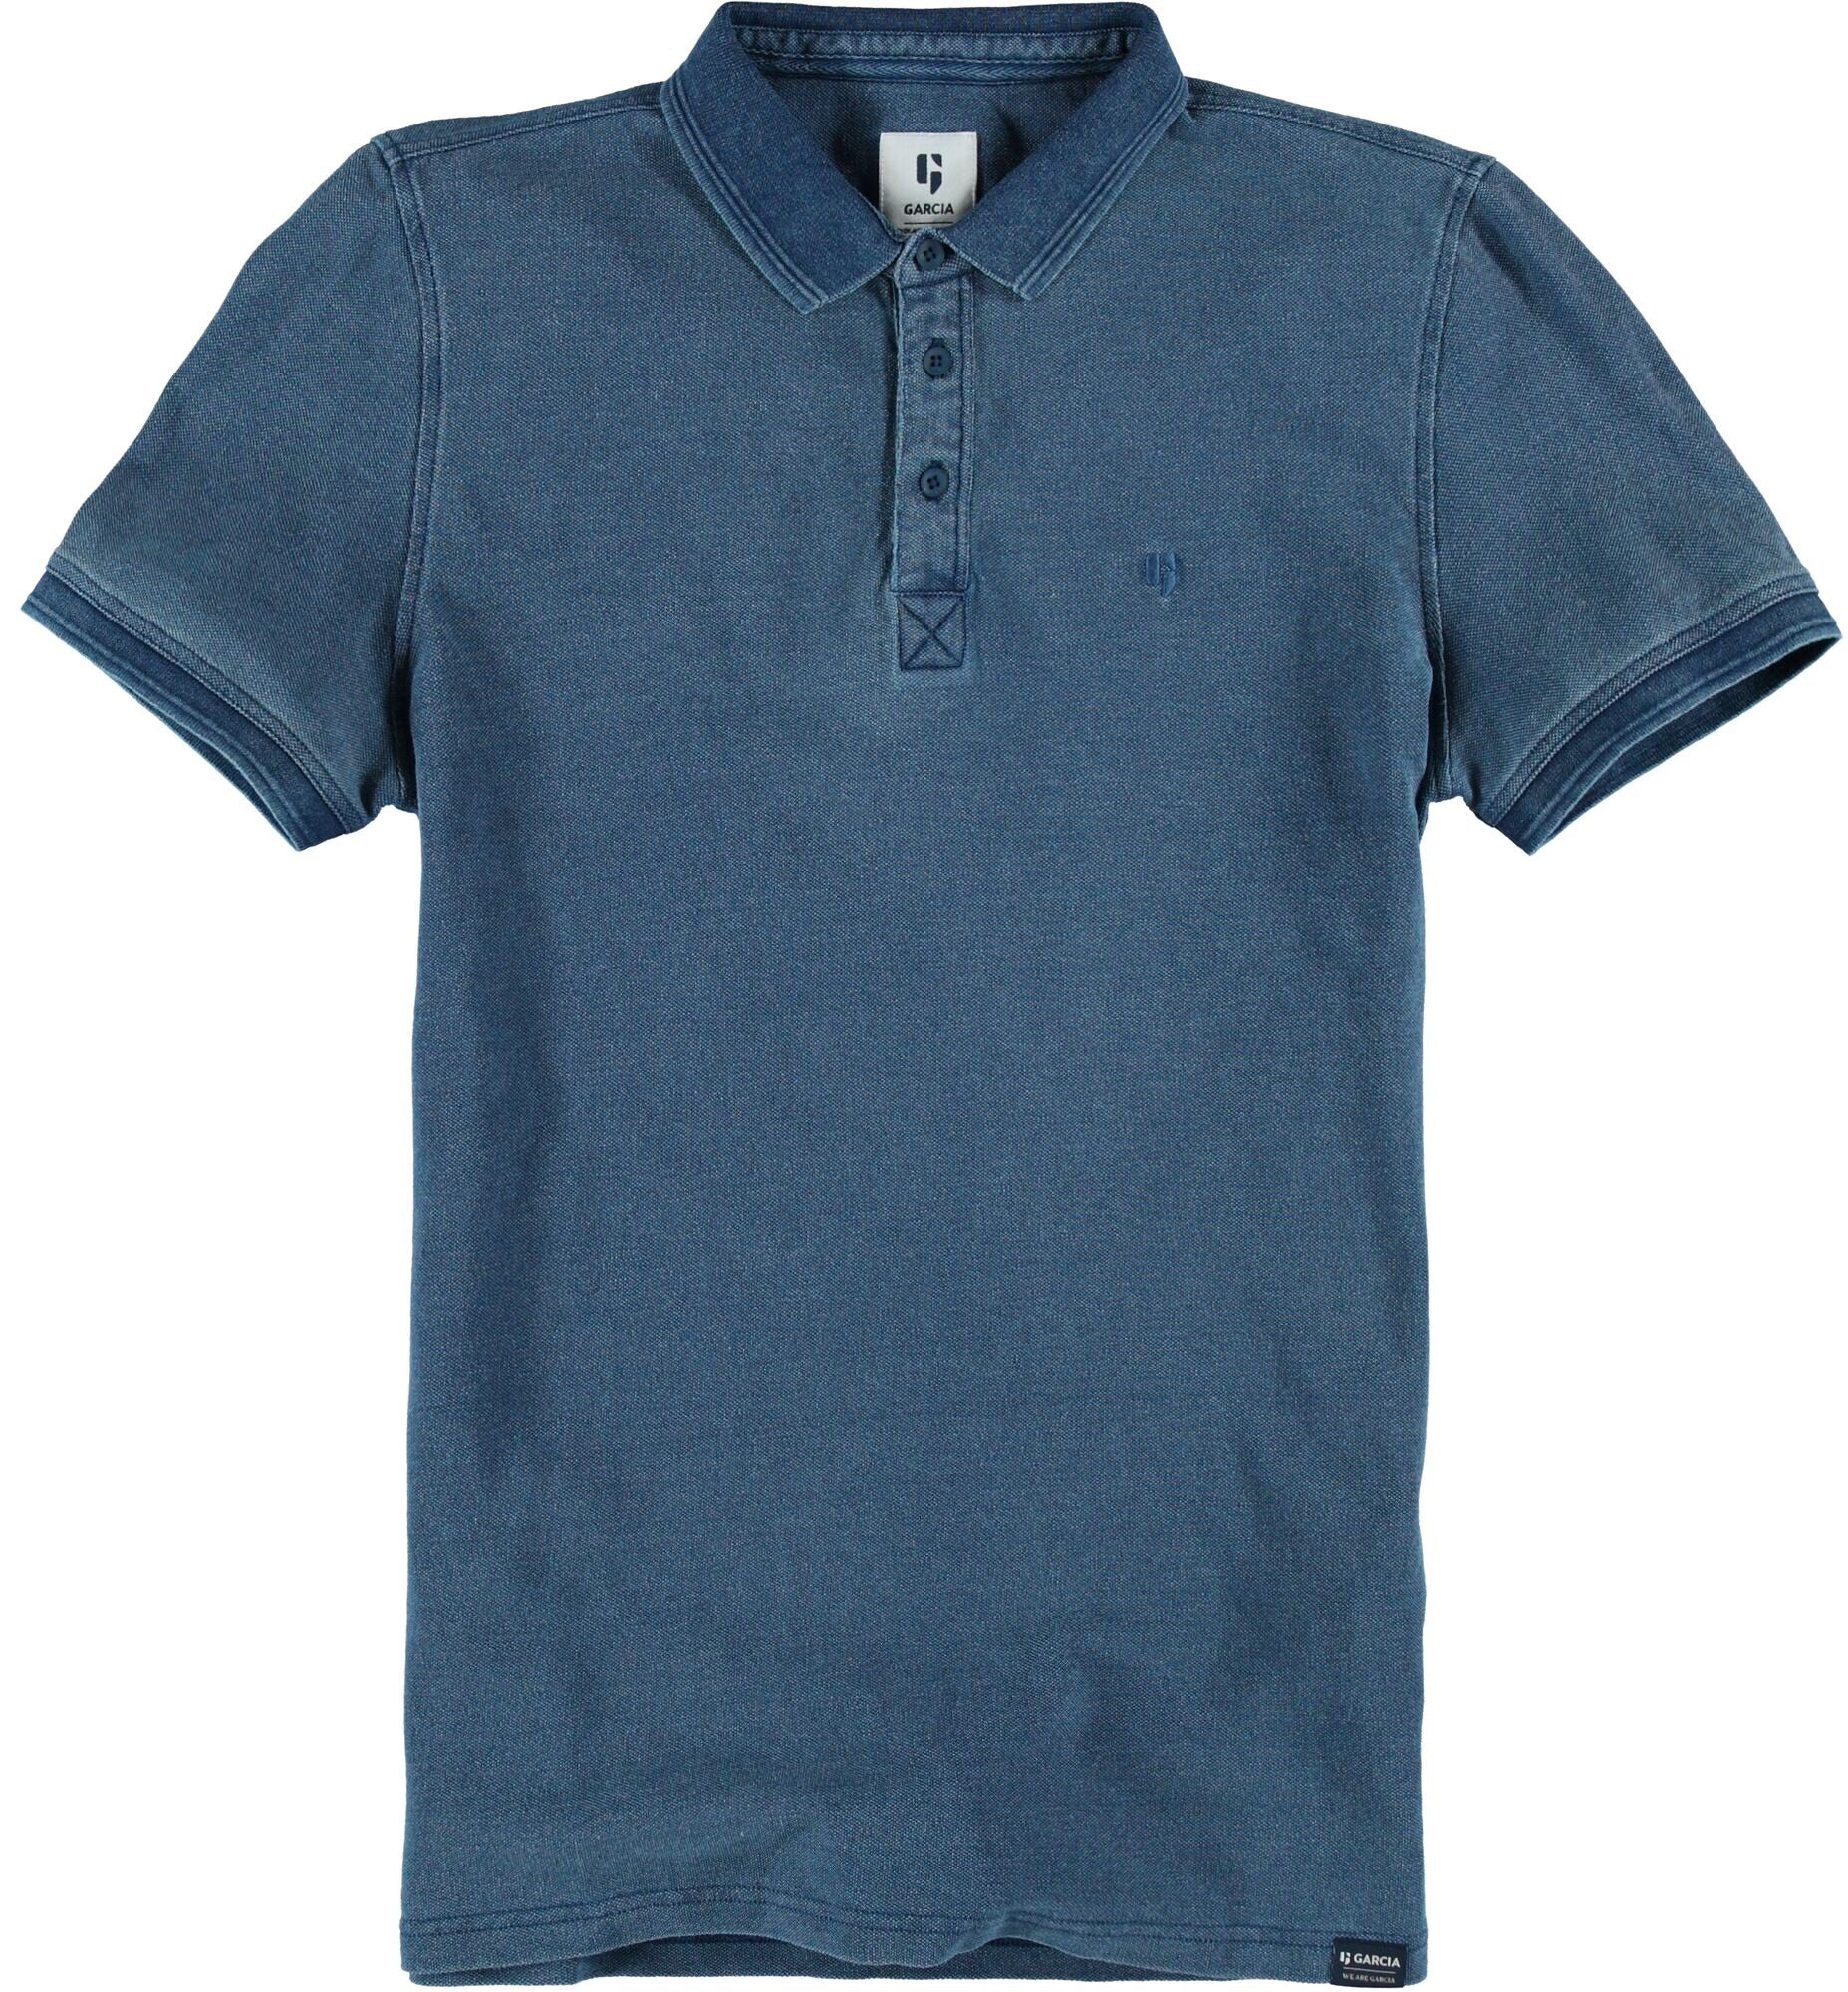 Garcia Blue Spring Polo Shirt